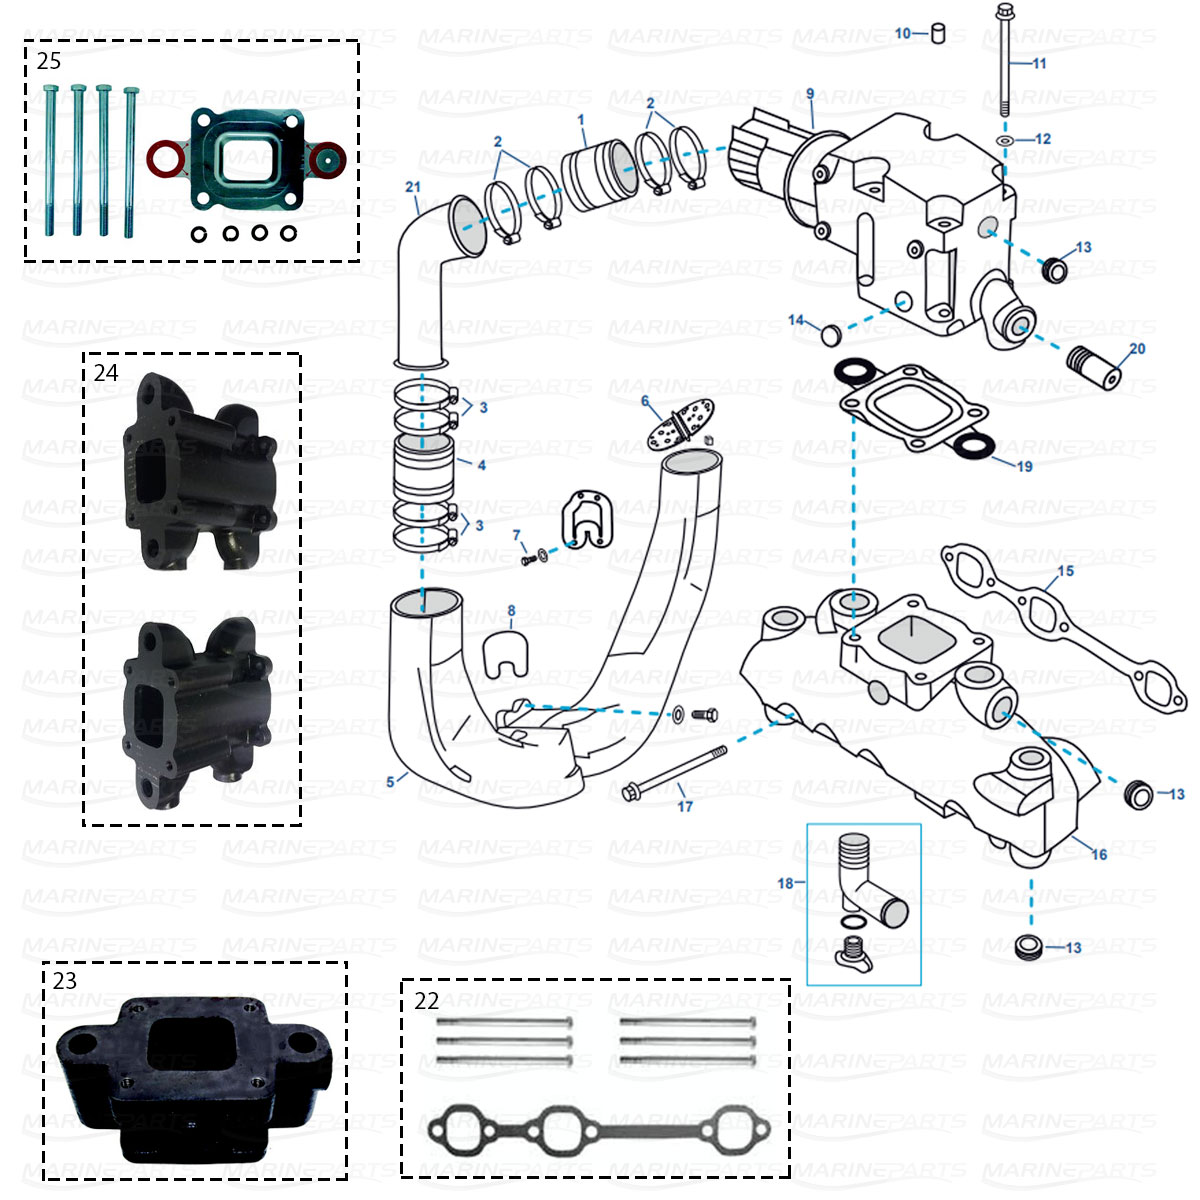 hight resolution of exhaust parts for mercruiser gm 4 3 ltr v6 mpi